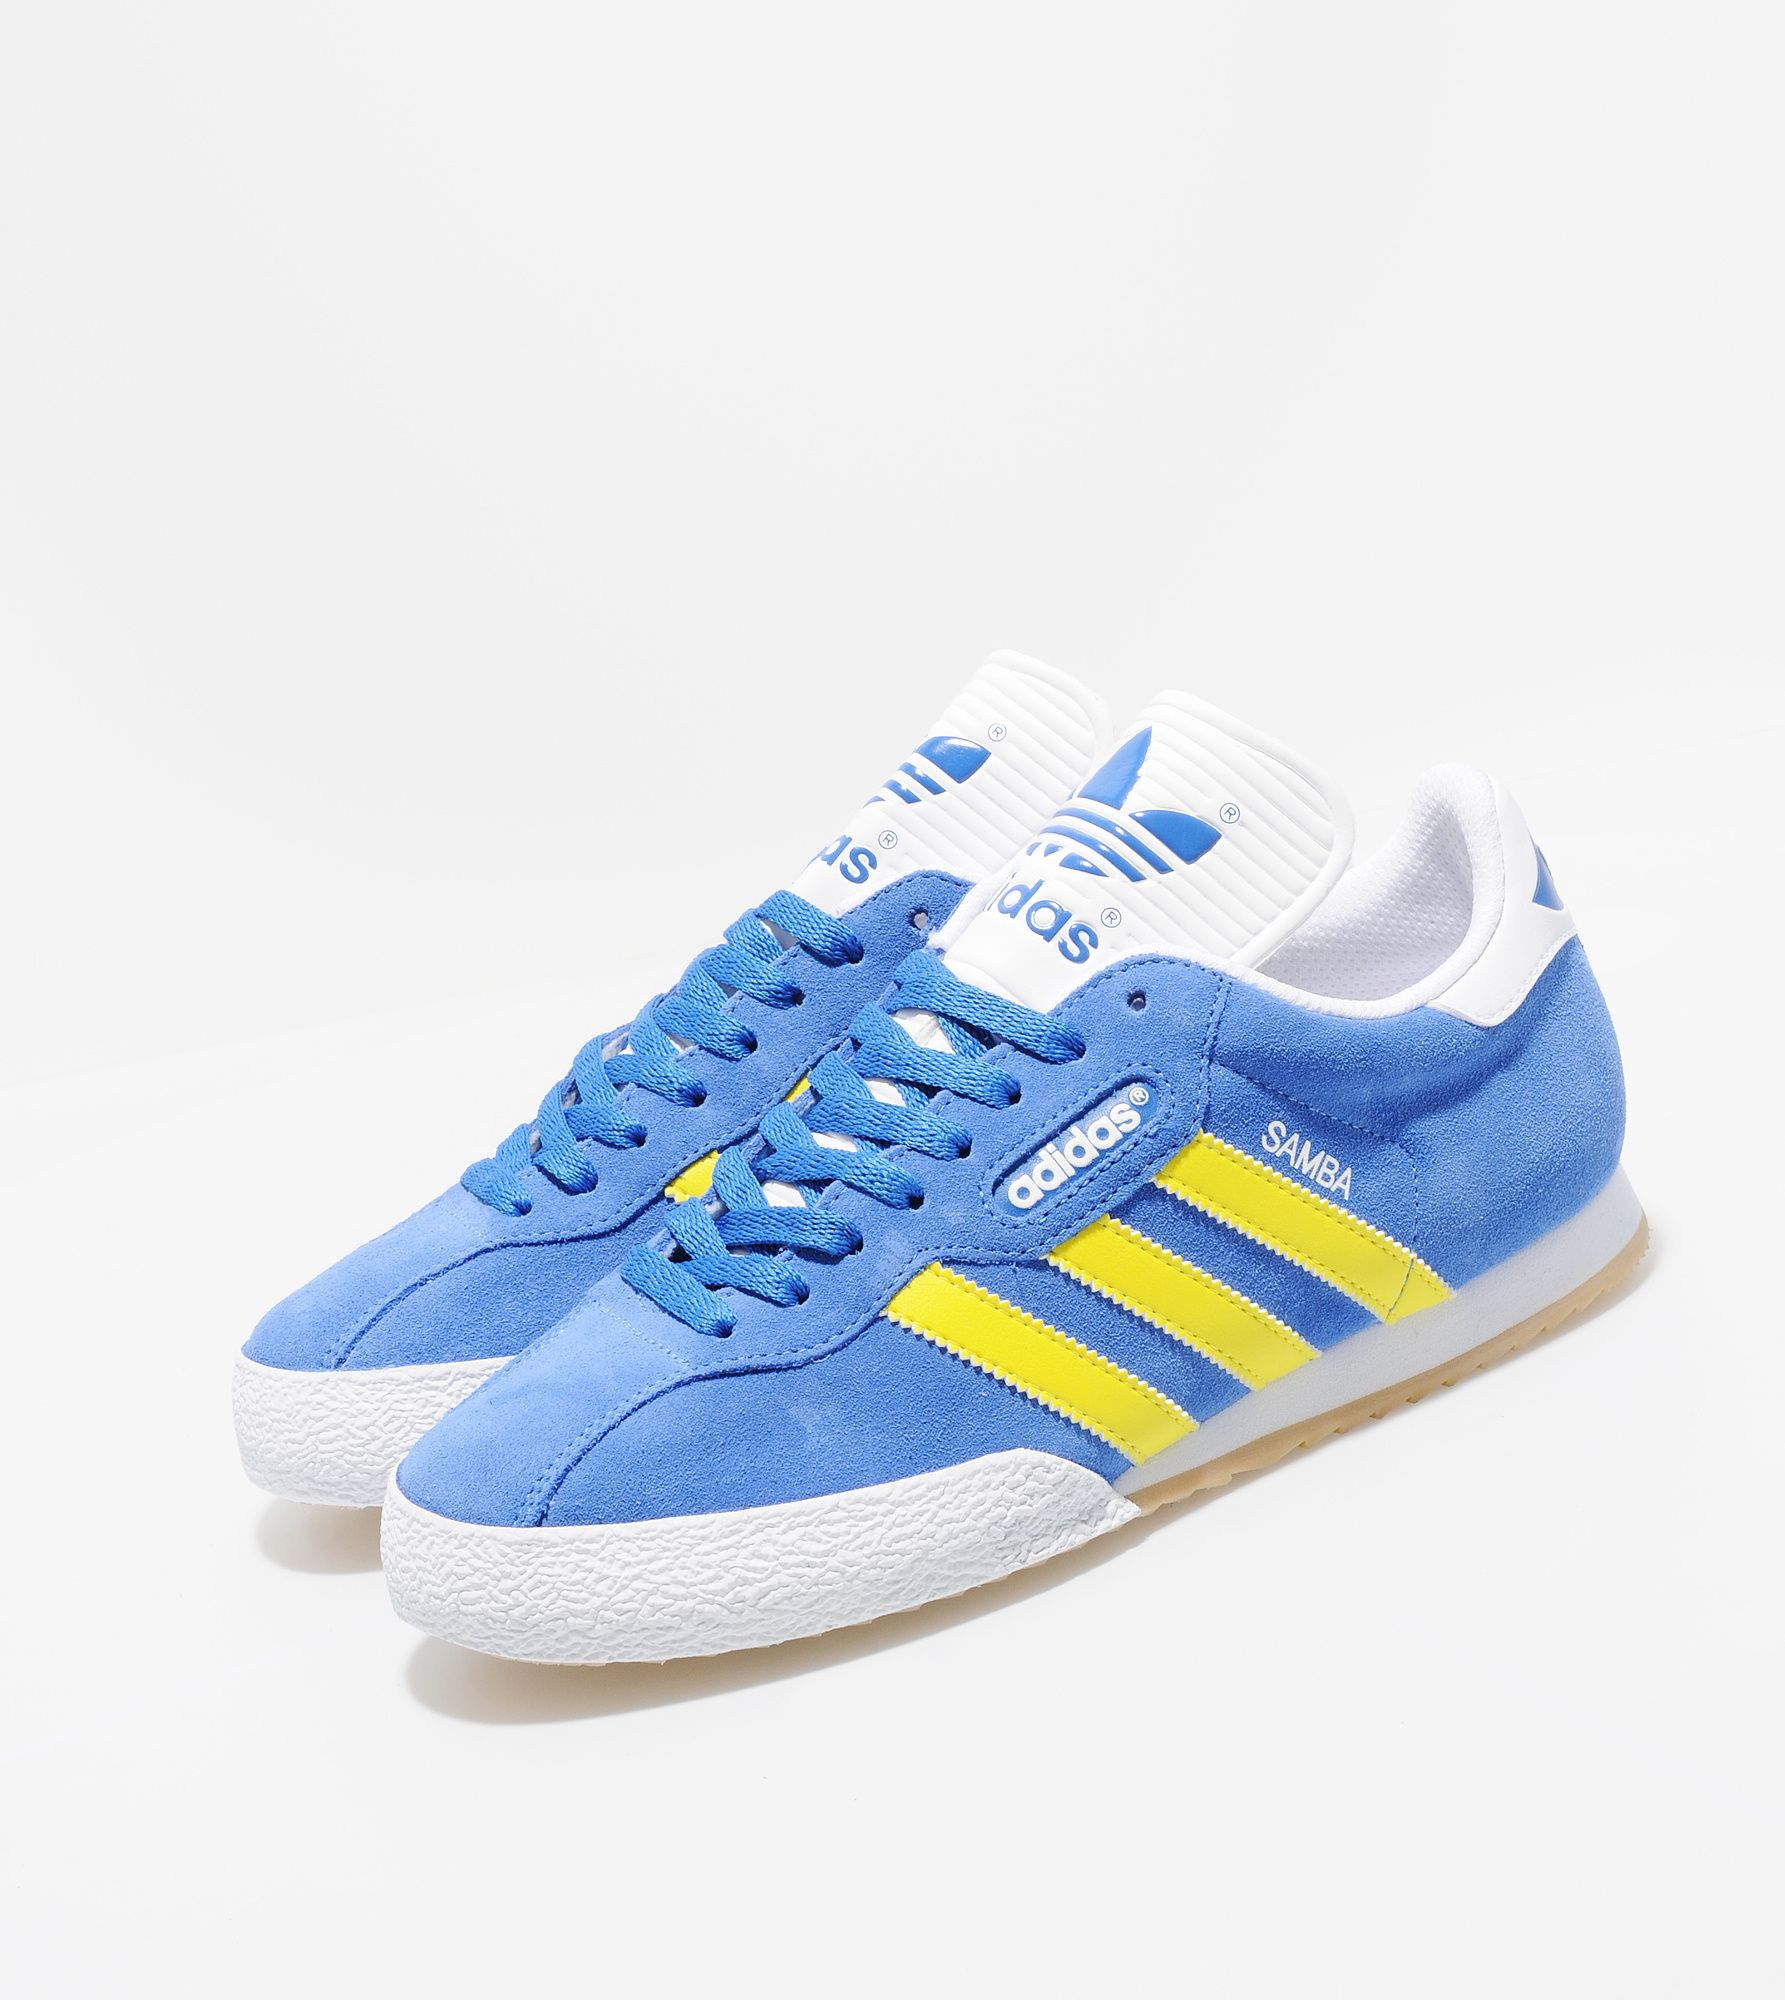 official store adidas samba suede navy blue 2a38c 135b5